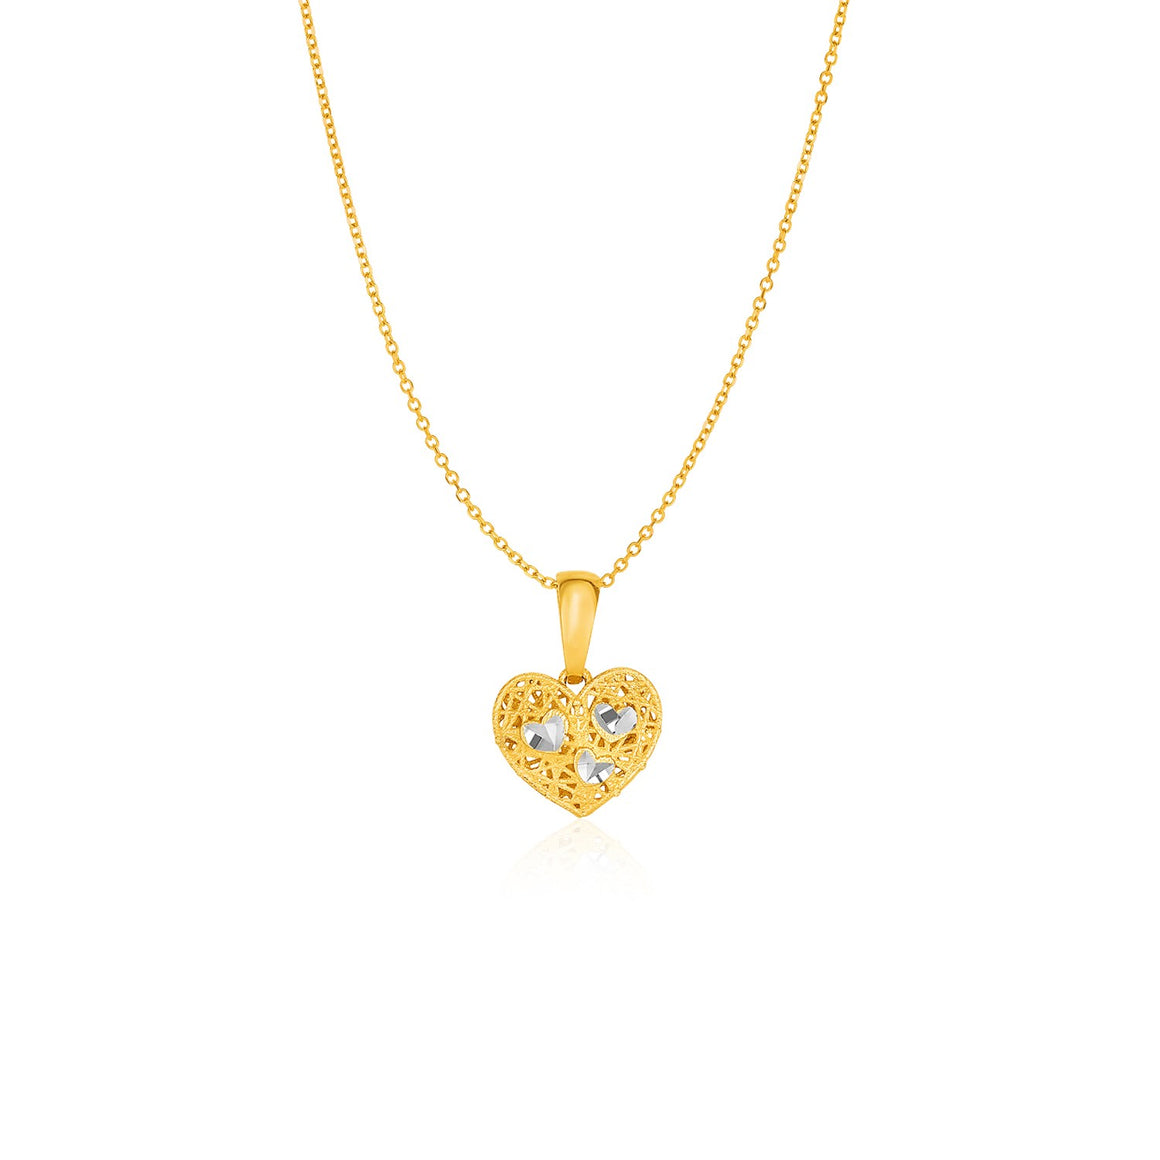 Filigree Style Reversible Heart Pendant in 14k Yellow Gold